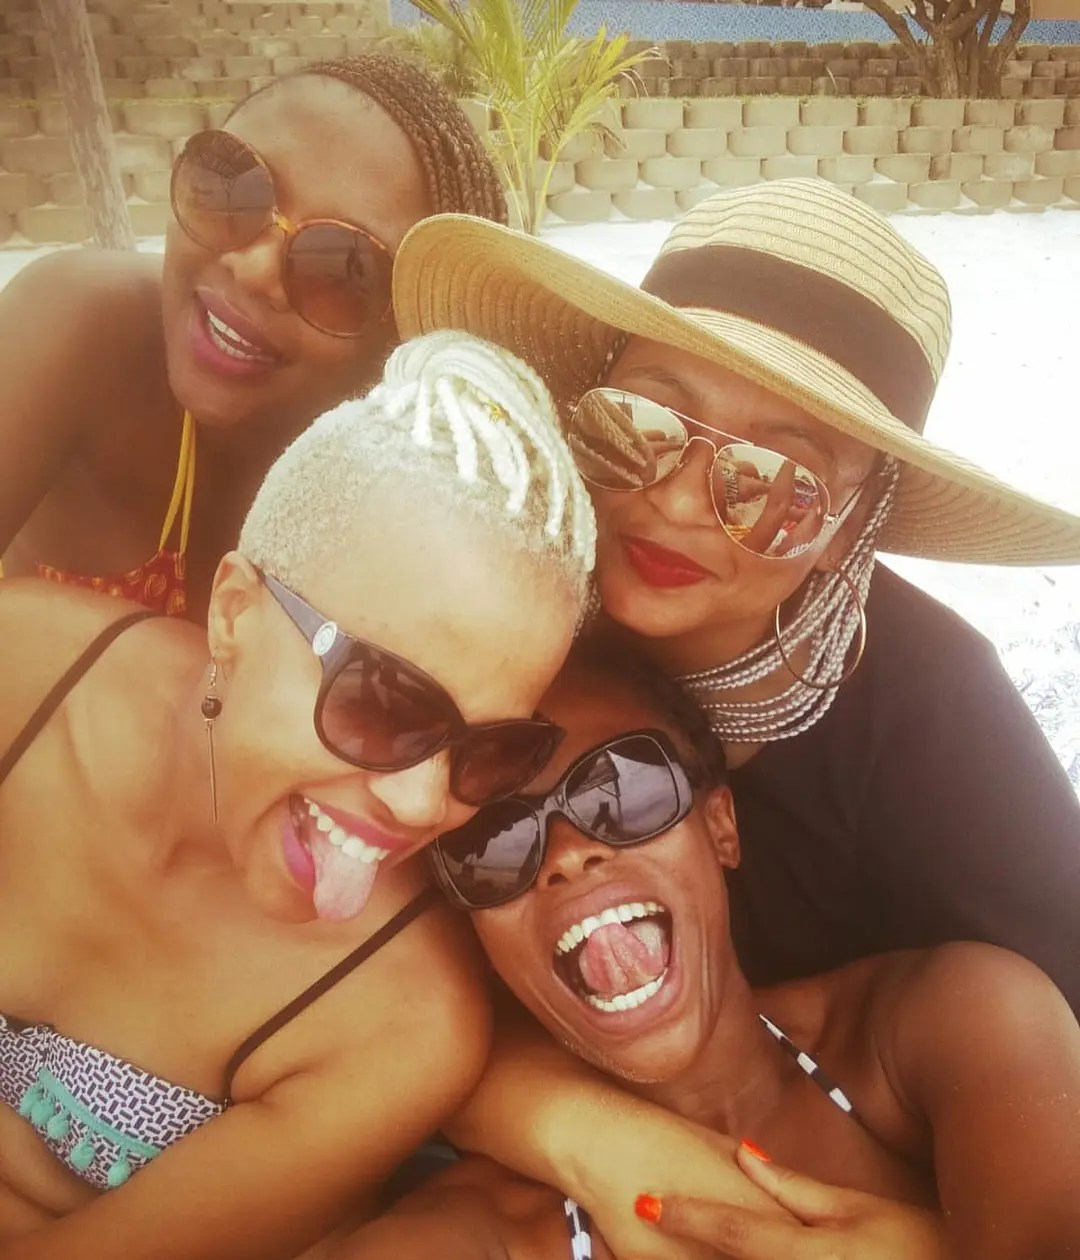 Unathi and friends